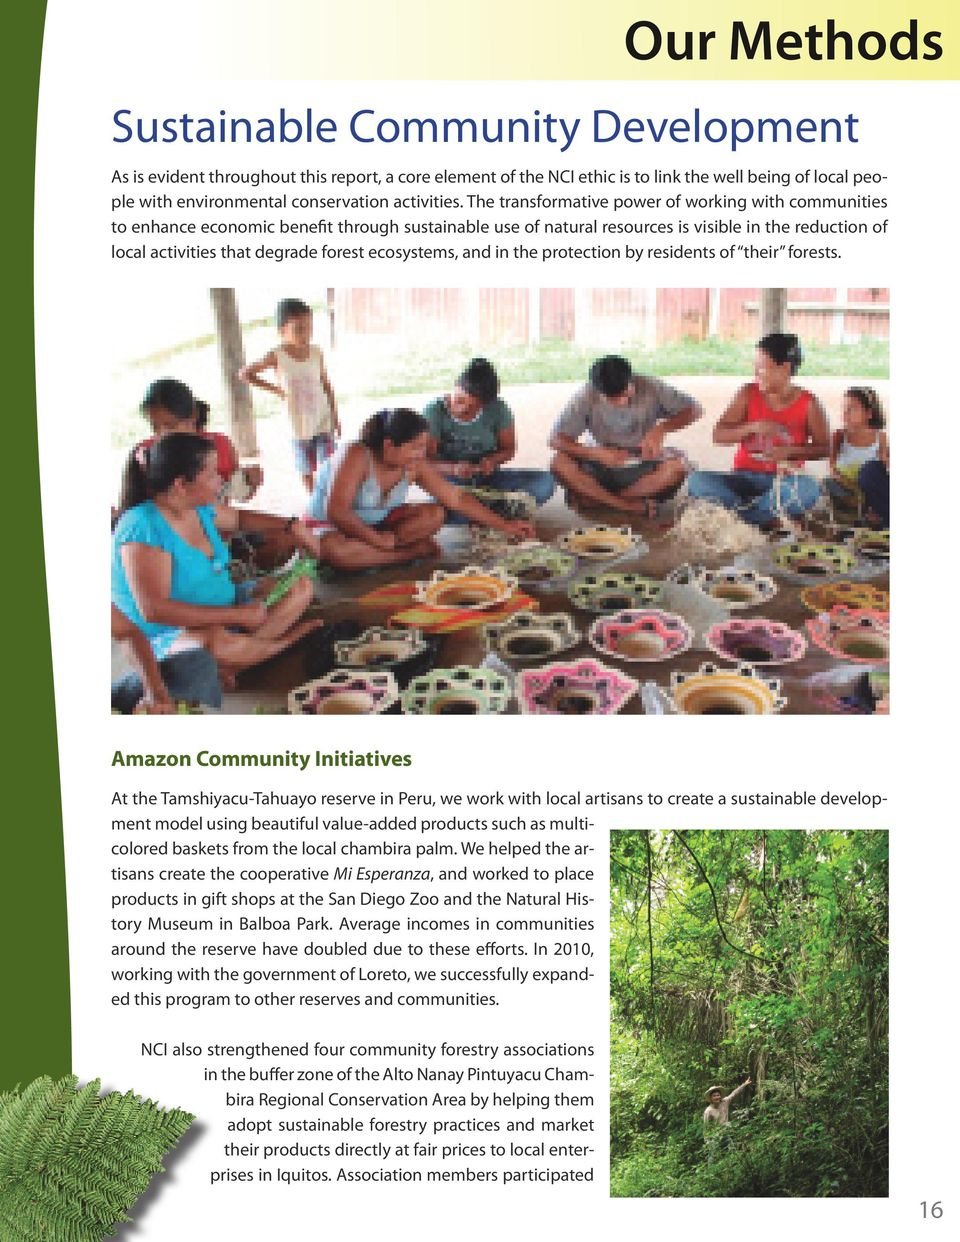 The transformative power of working with communities to enhance economic benefit through sustainable use of natural resources is visible in the reduction of local activities that degrade forest